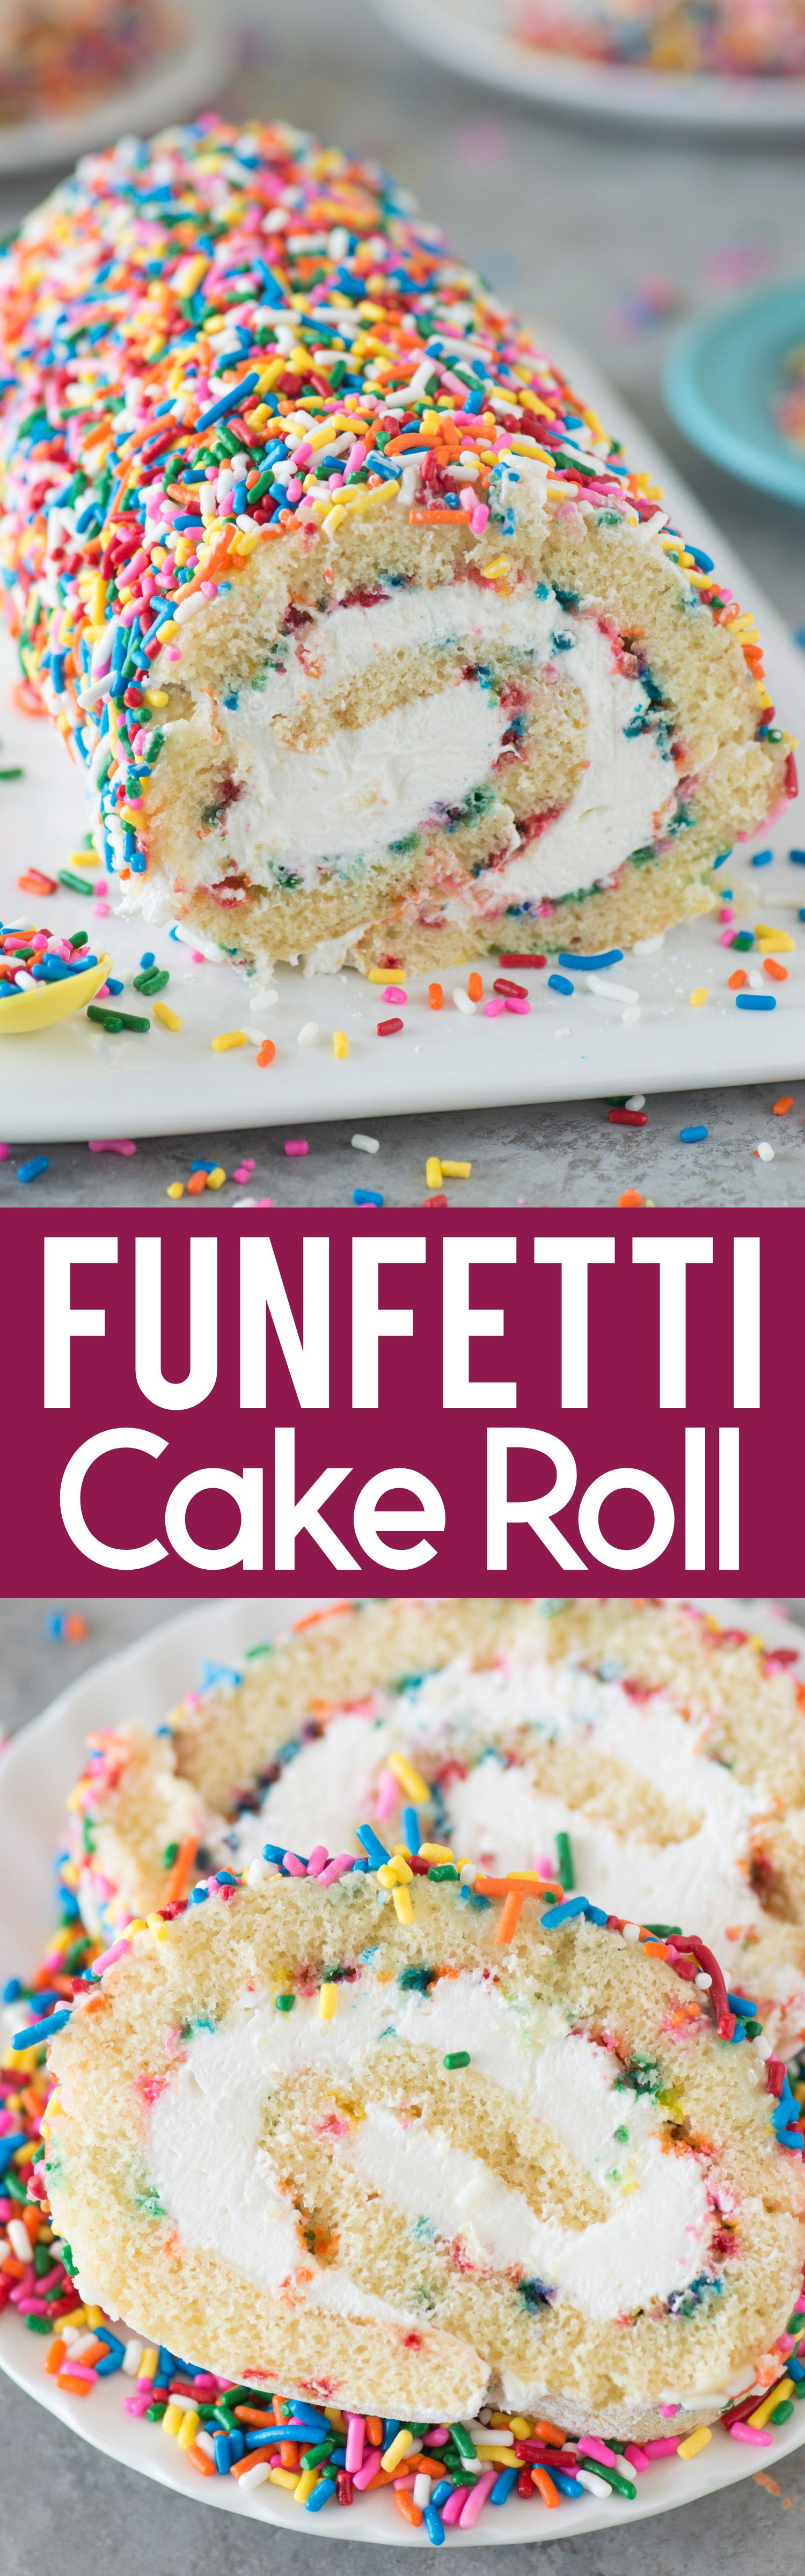 The Ultimate Funfetti Cake Roll A Vanilla Cake Paired With A Cream Cheese Frosting Add As Many Sprinkles As You Like